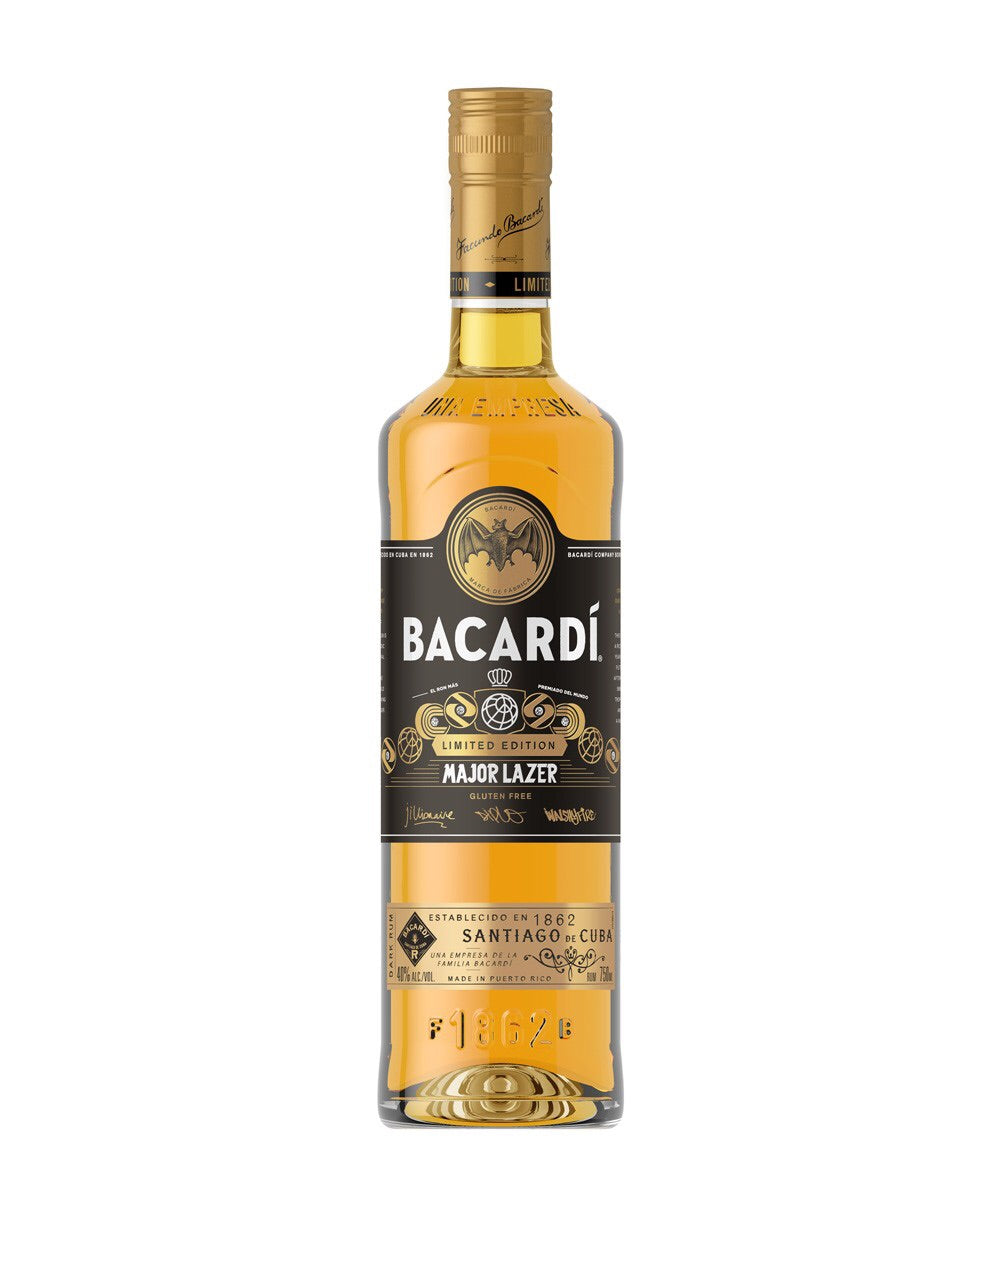 Bacardi Limited Major Lazer 750mL